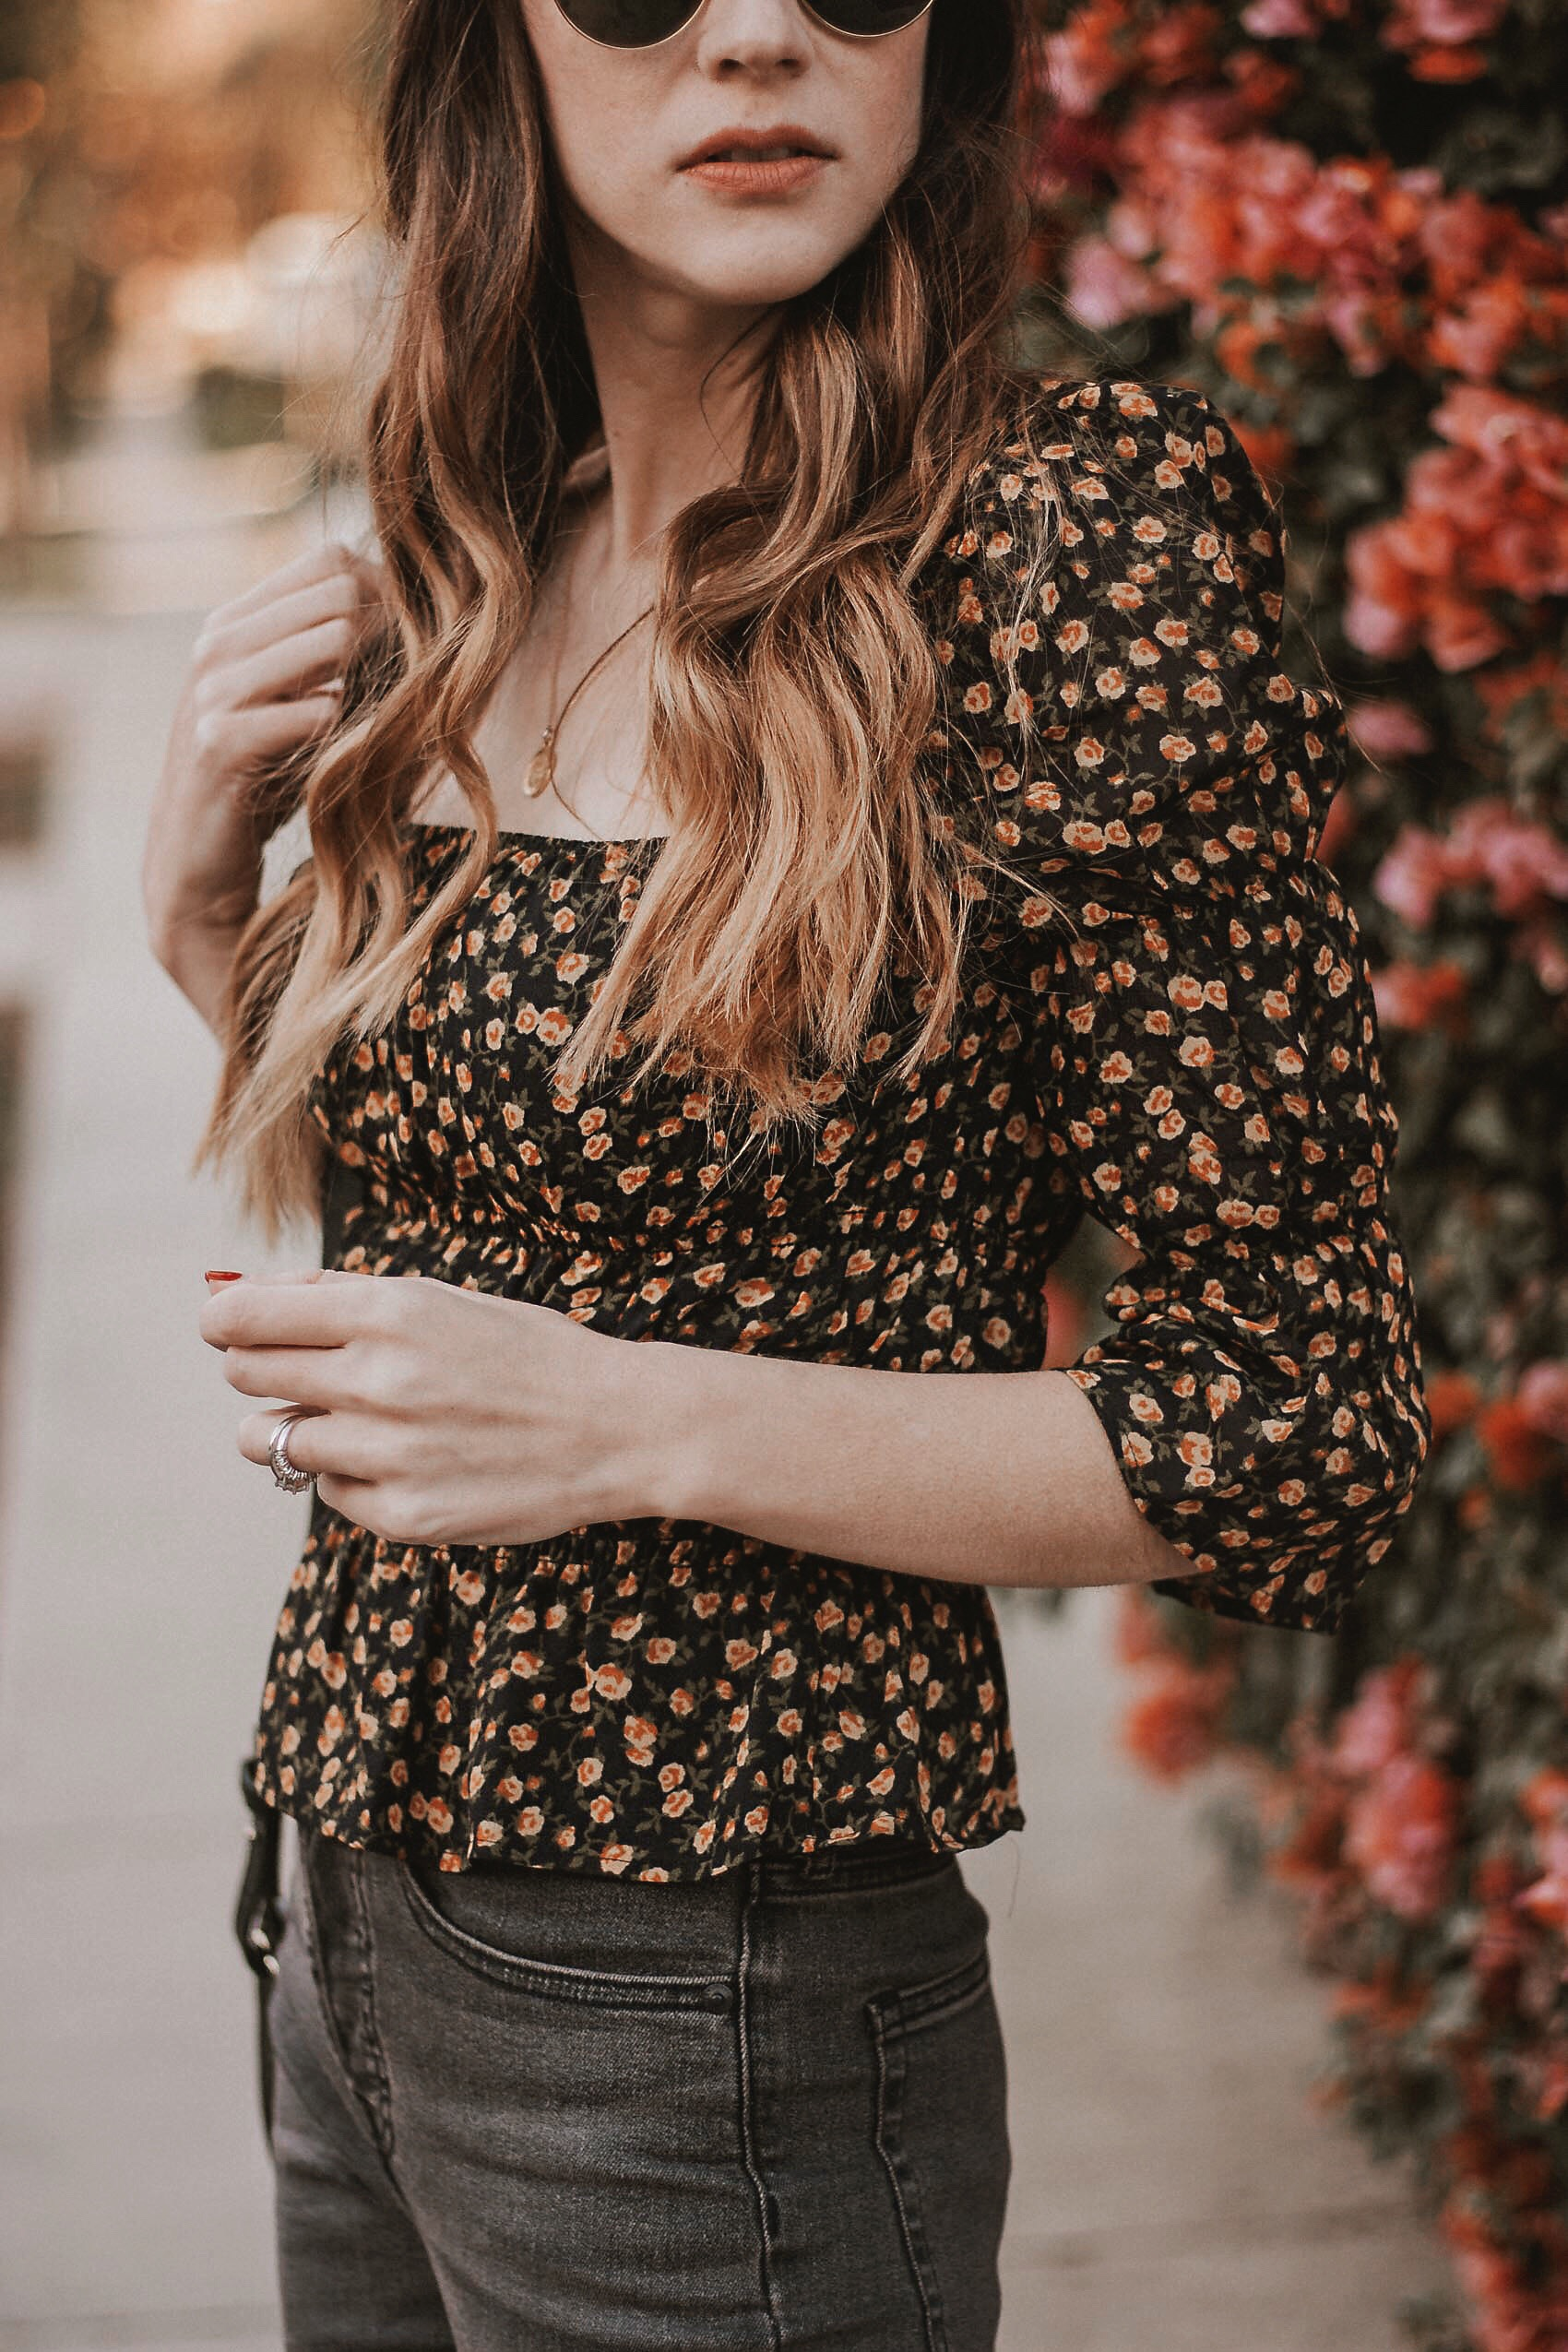 Los Angeles brand Reformation of LA Fashion blogger, Jeans and a Teacup